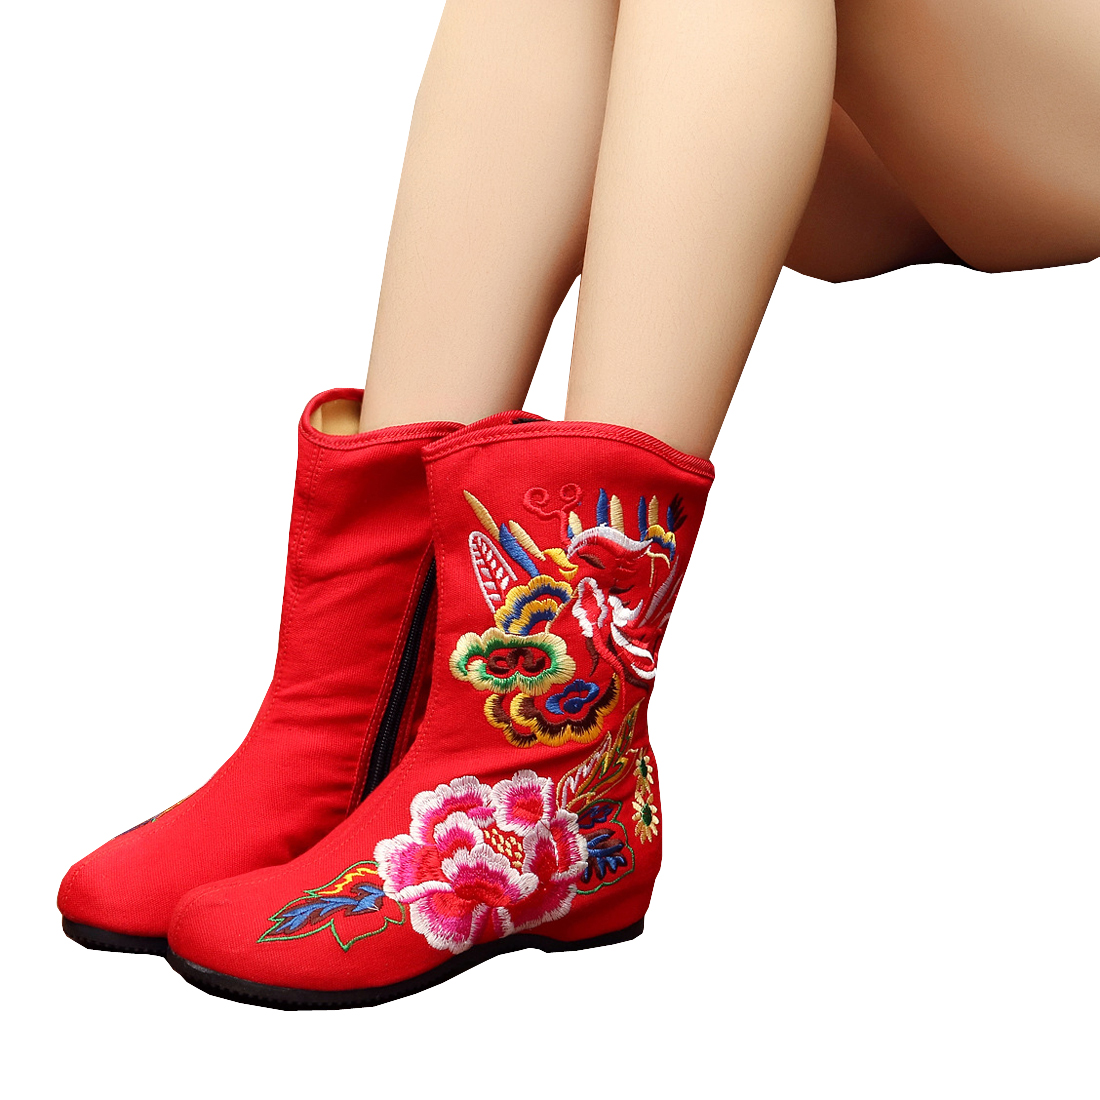 New Women National Shoes ZIPPER Embroidered Comfort Floral Beijing ...